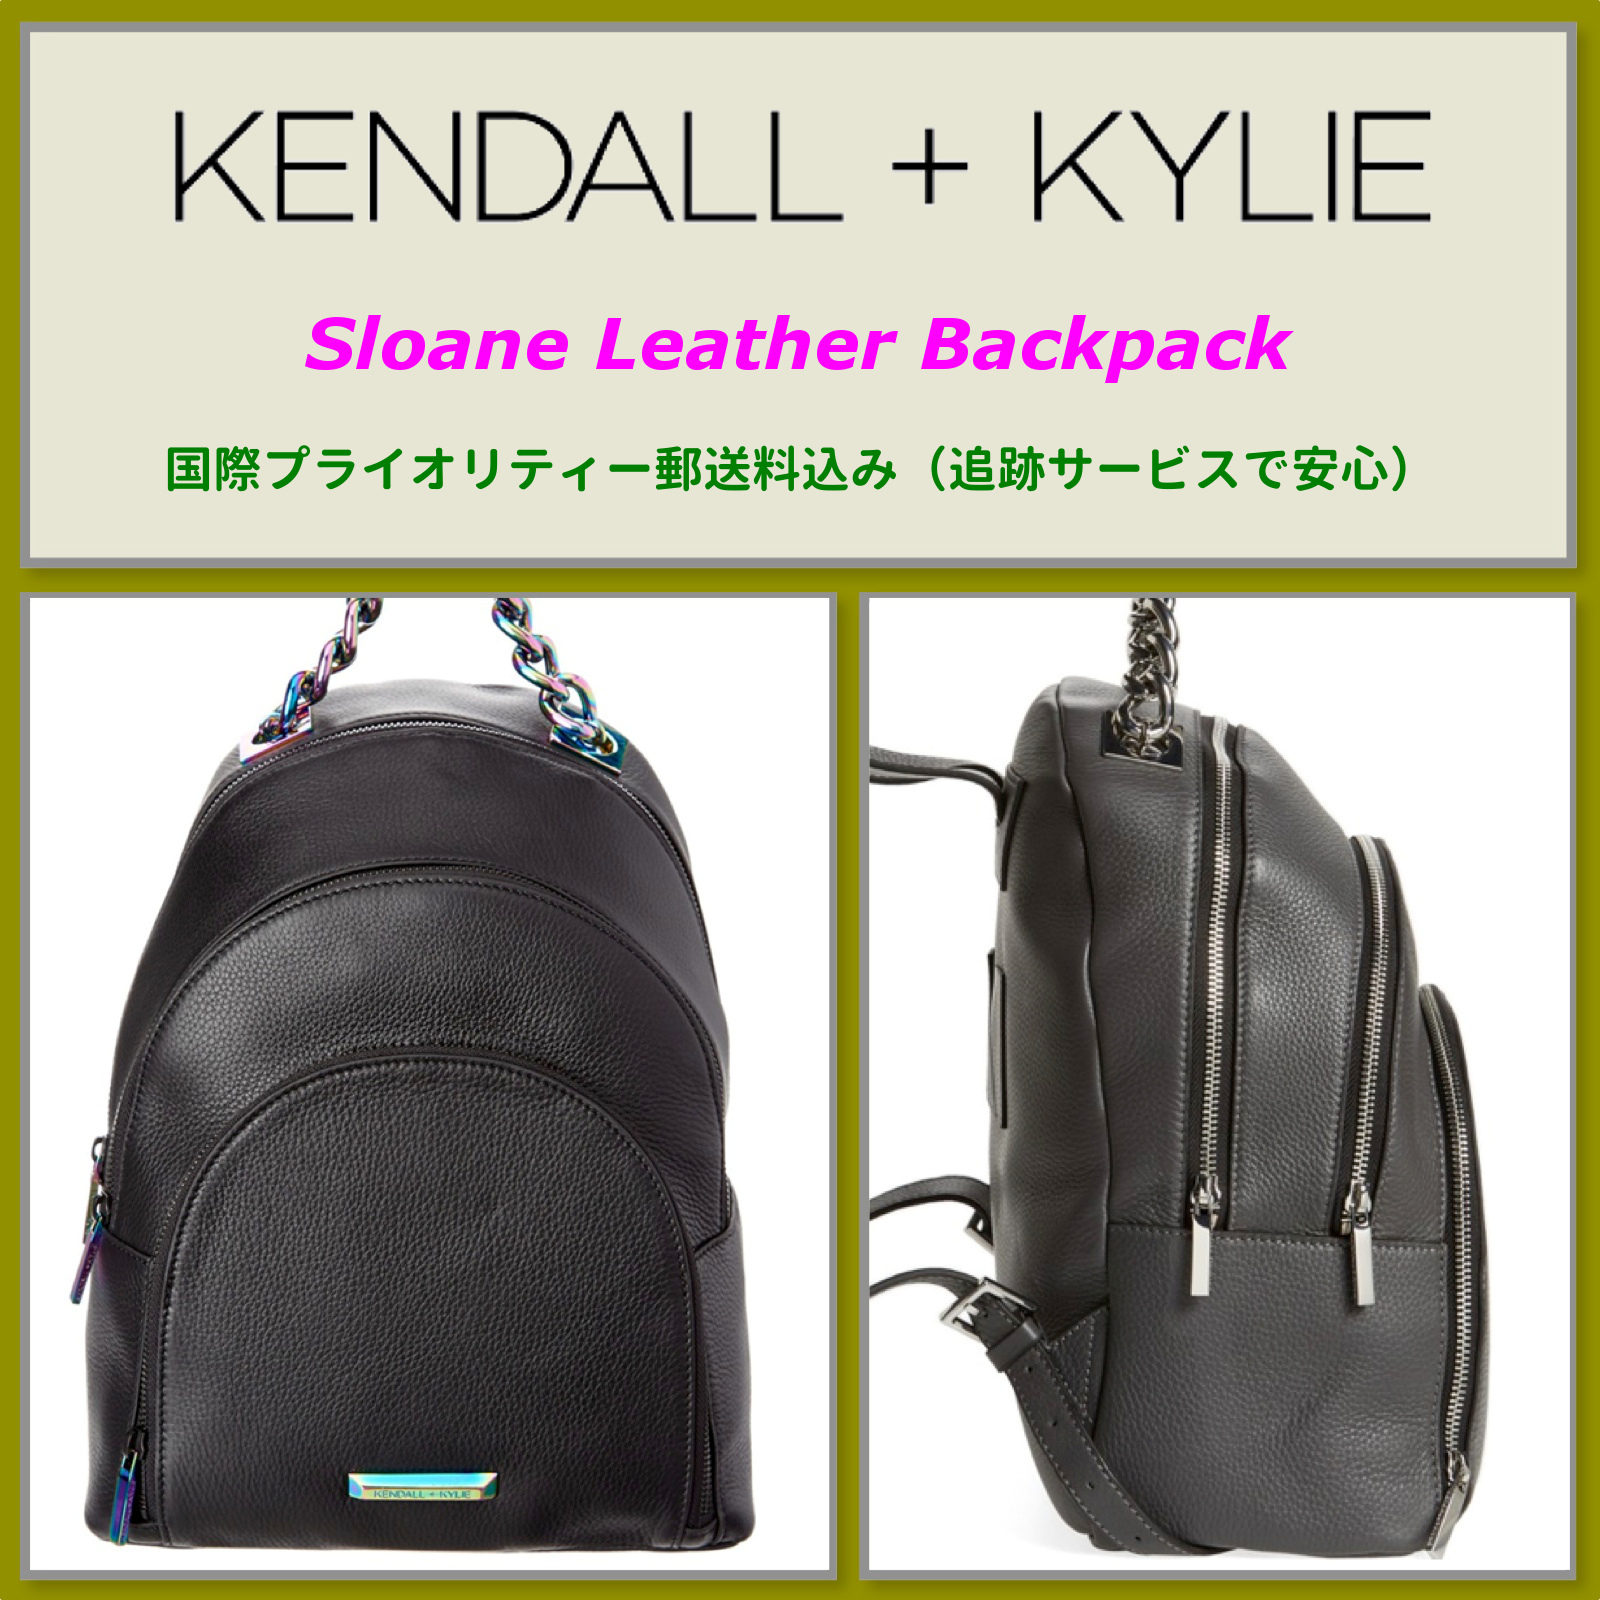 【SALE】Kendall+Kylie Sloaneレザー・バックパック